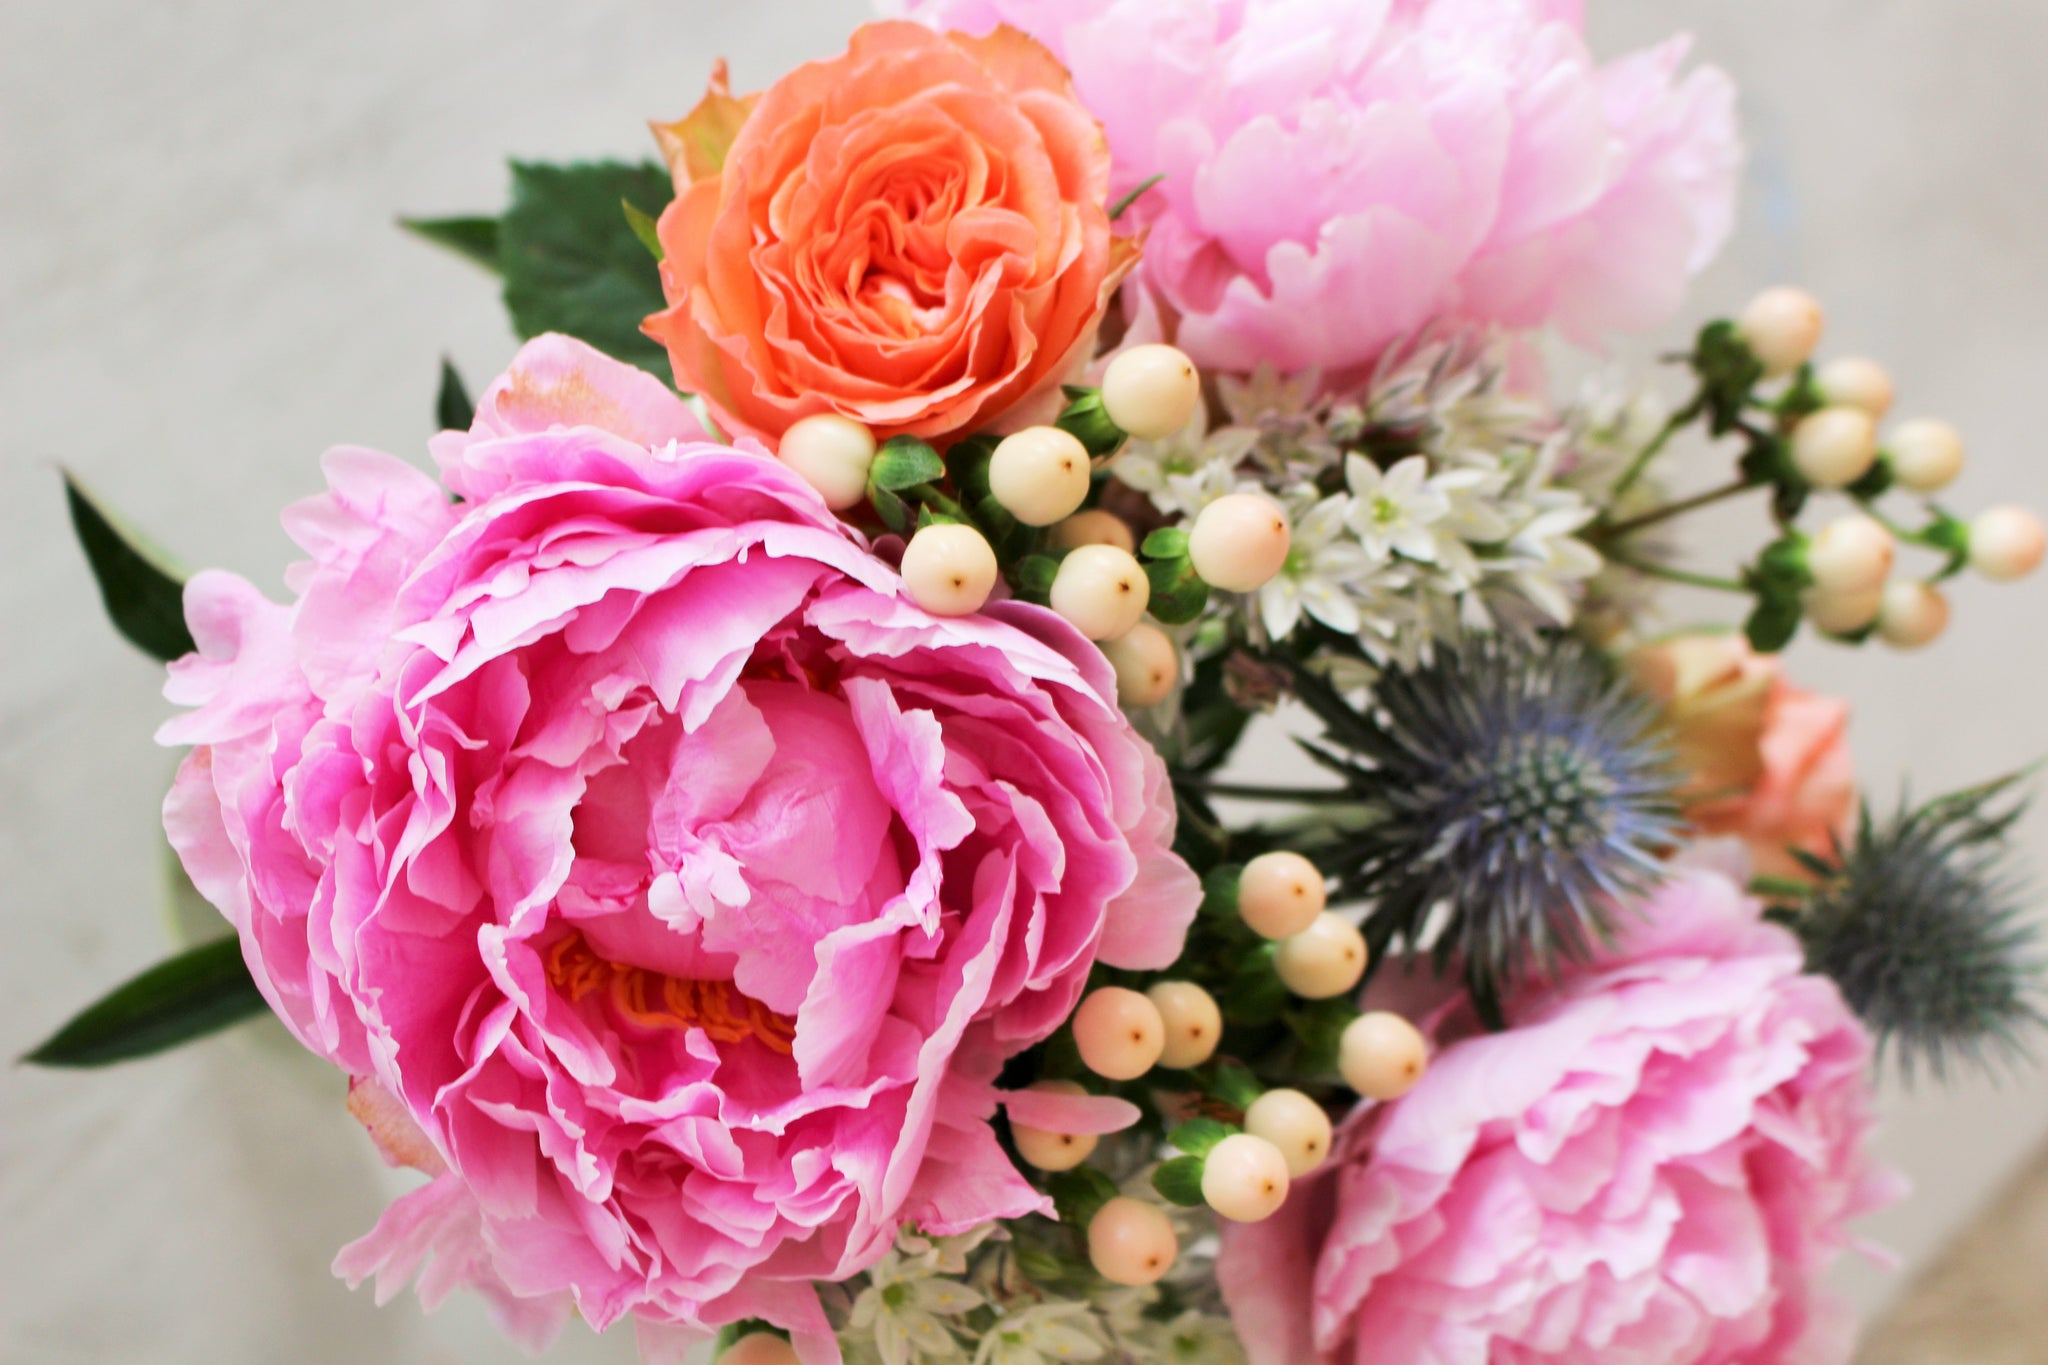 Close up photograph showing a letterbox bouquet of pink peonies, orange roses,  berries, and sea holly.